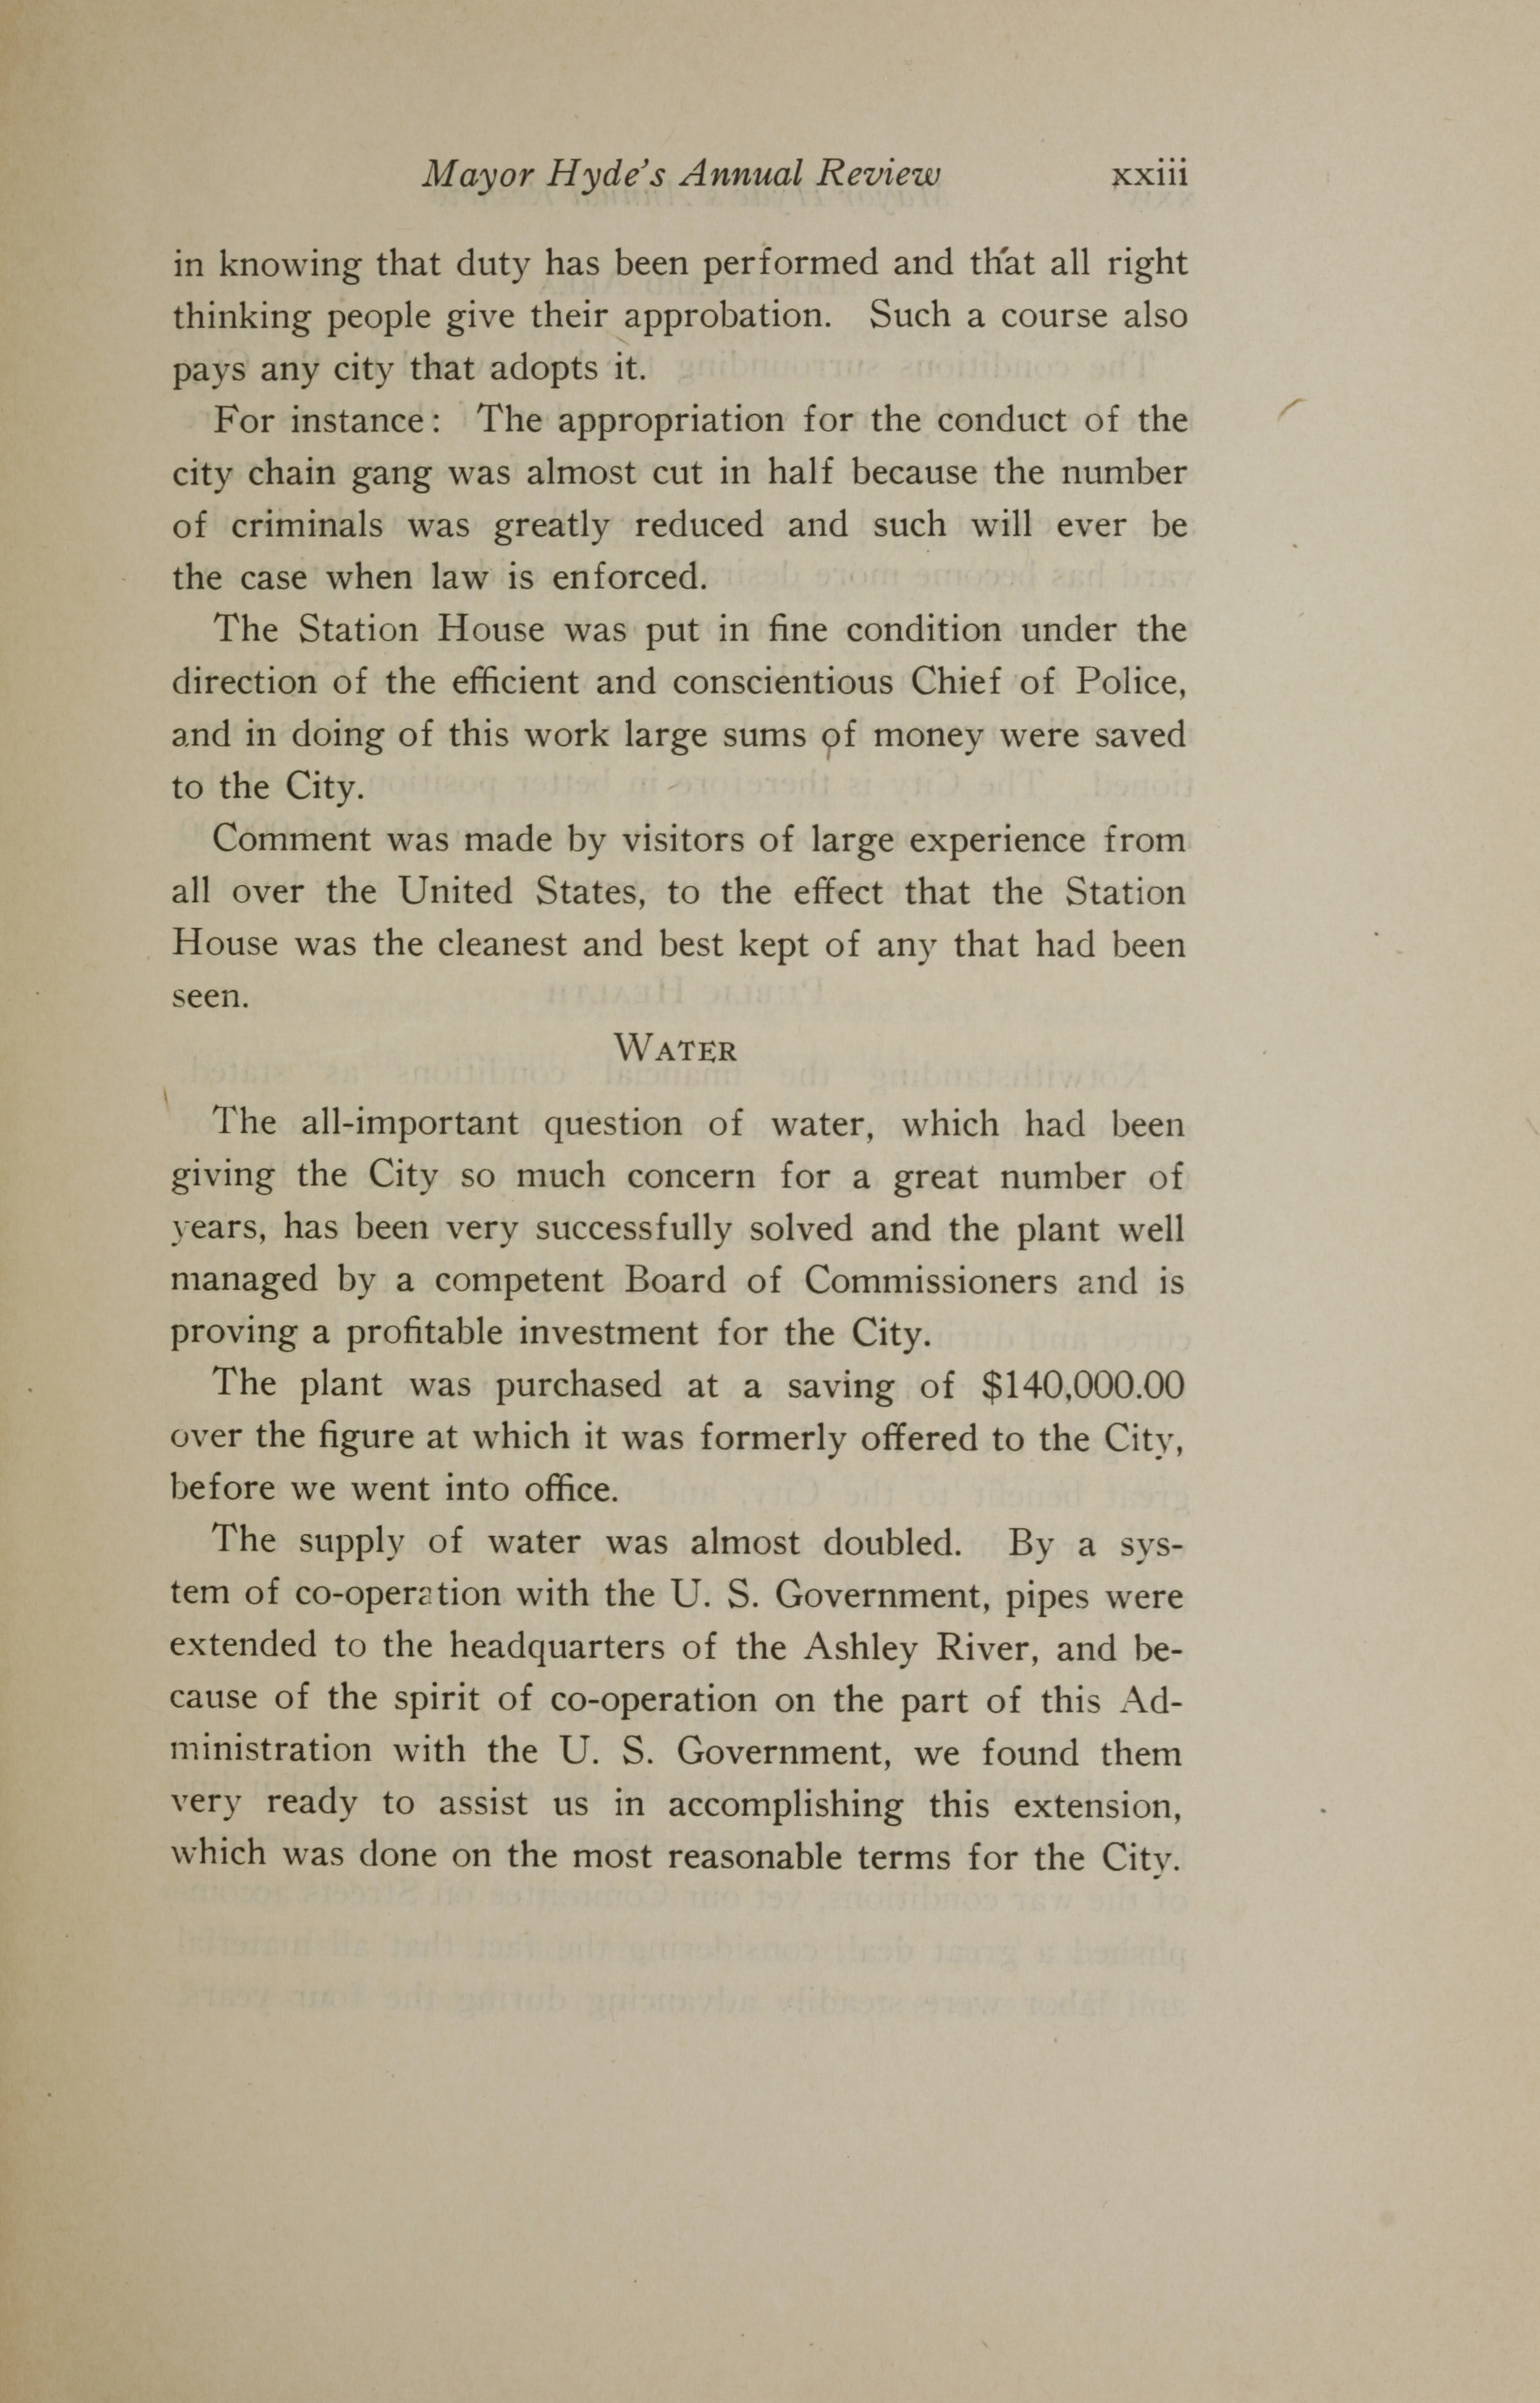 Charleston Yearbook, 1919, page xxiii